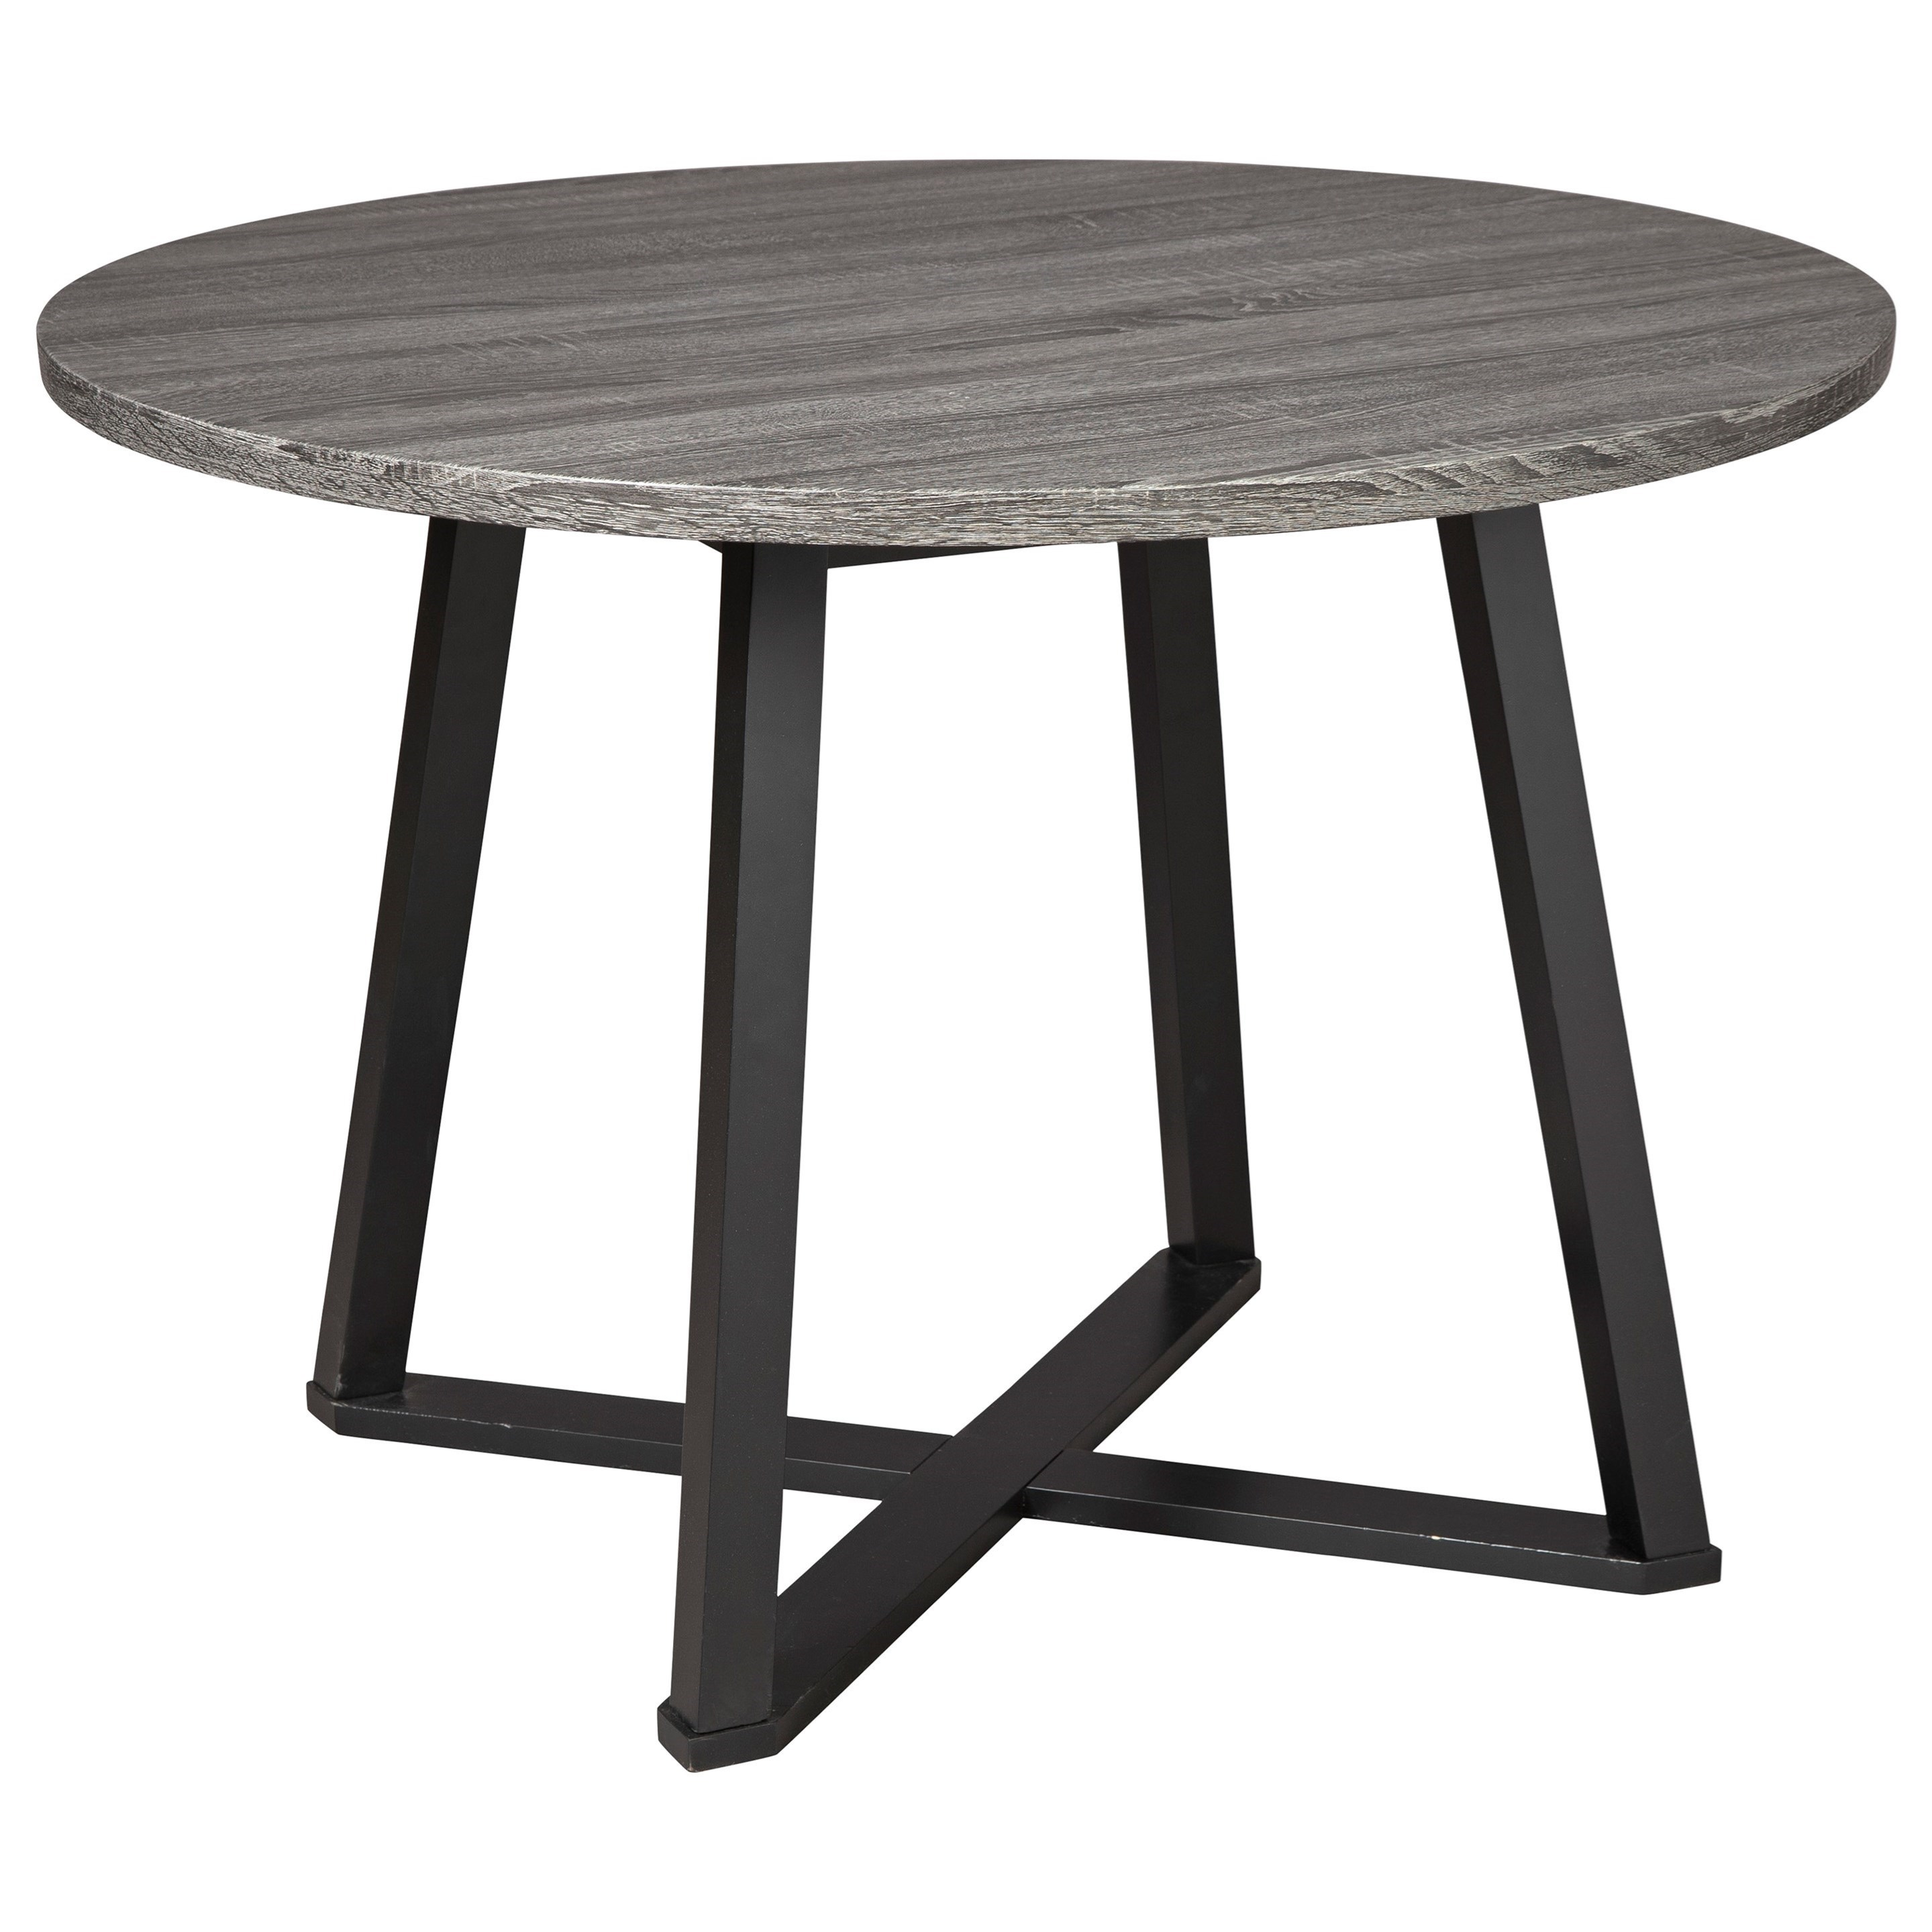 Centiar Round Dining Room Table by Signature Design by Ashley at Northeast Factory Direct